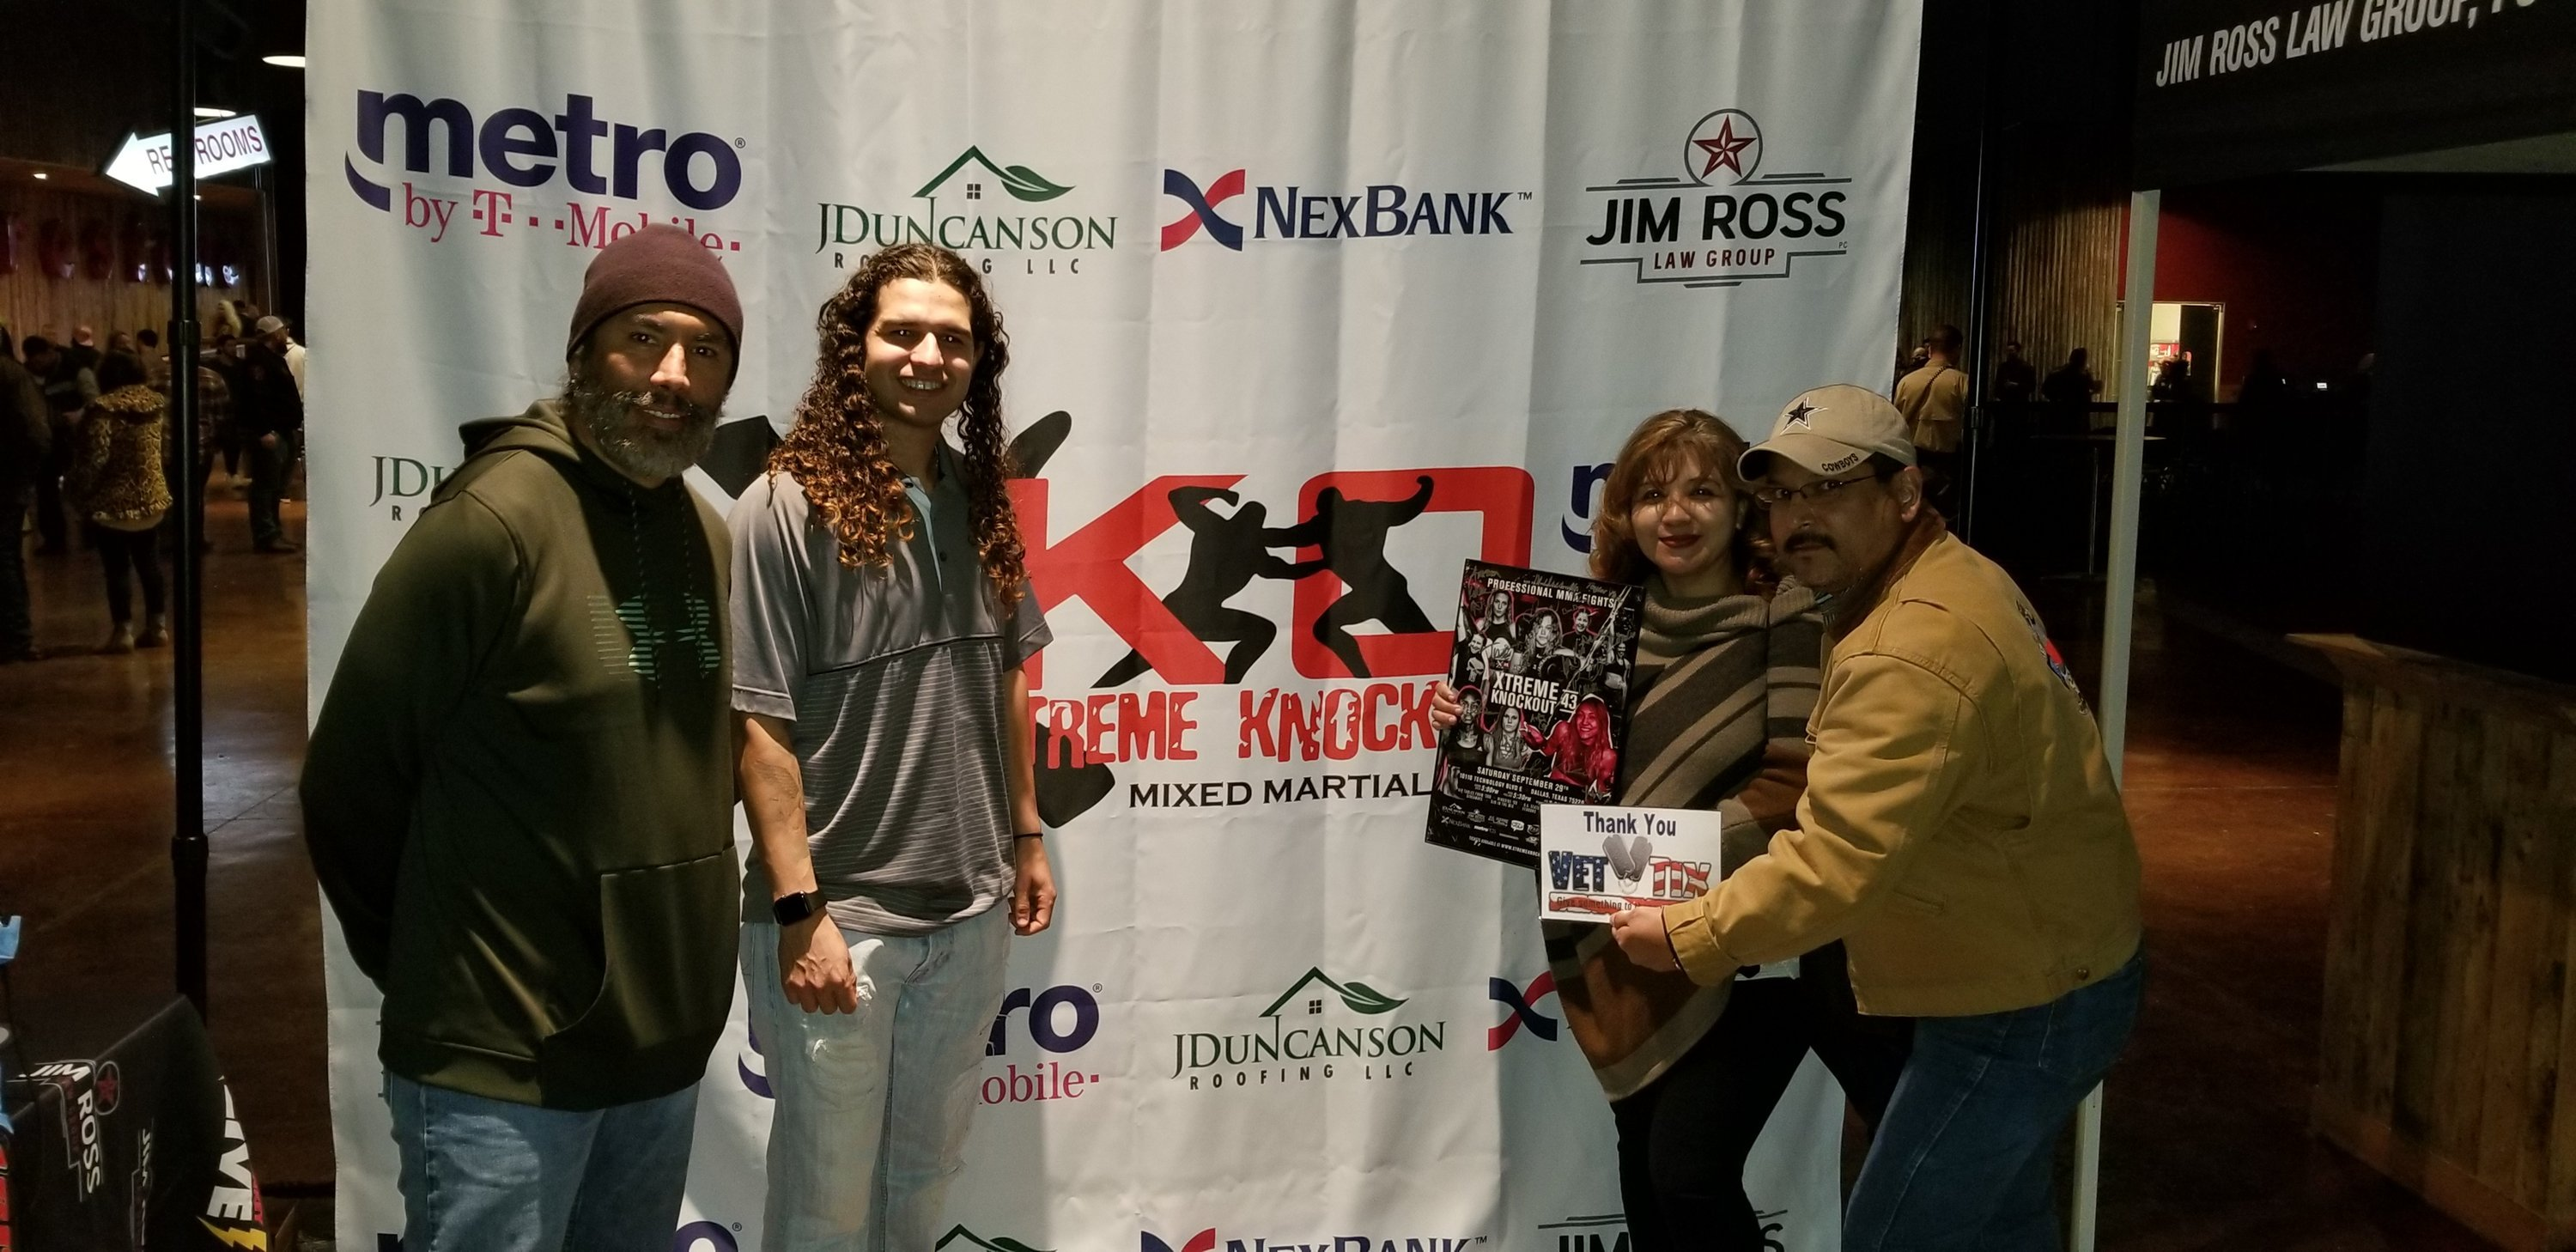 Juan attended Xtreme Knockout Presents - All in at Gas Monkey Live! - General Admission - Live Mixed Martial Arts on Jan 12th 2019 via VetTix